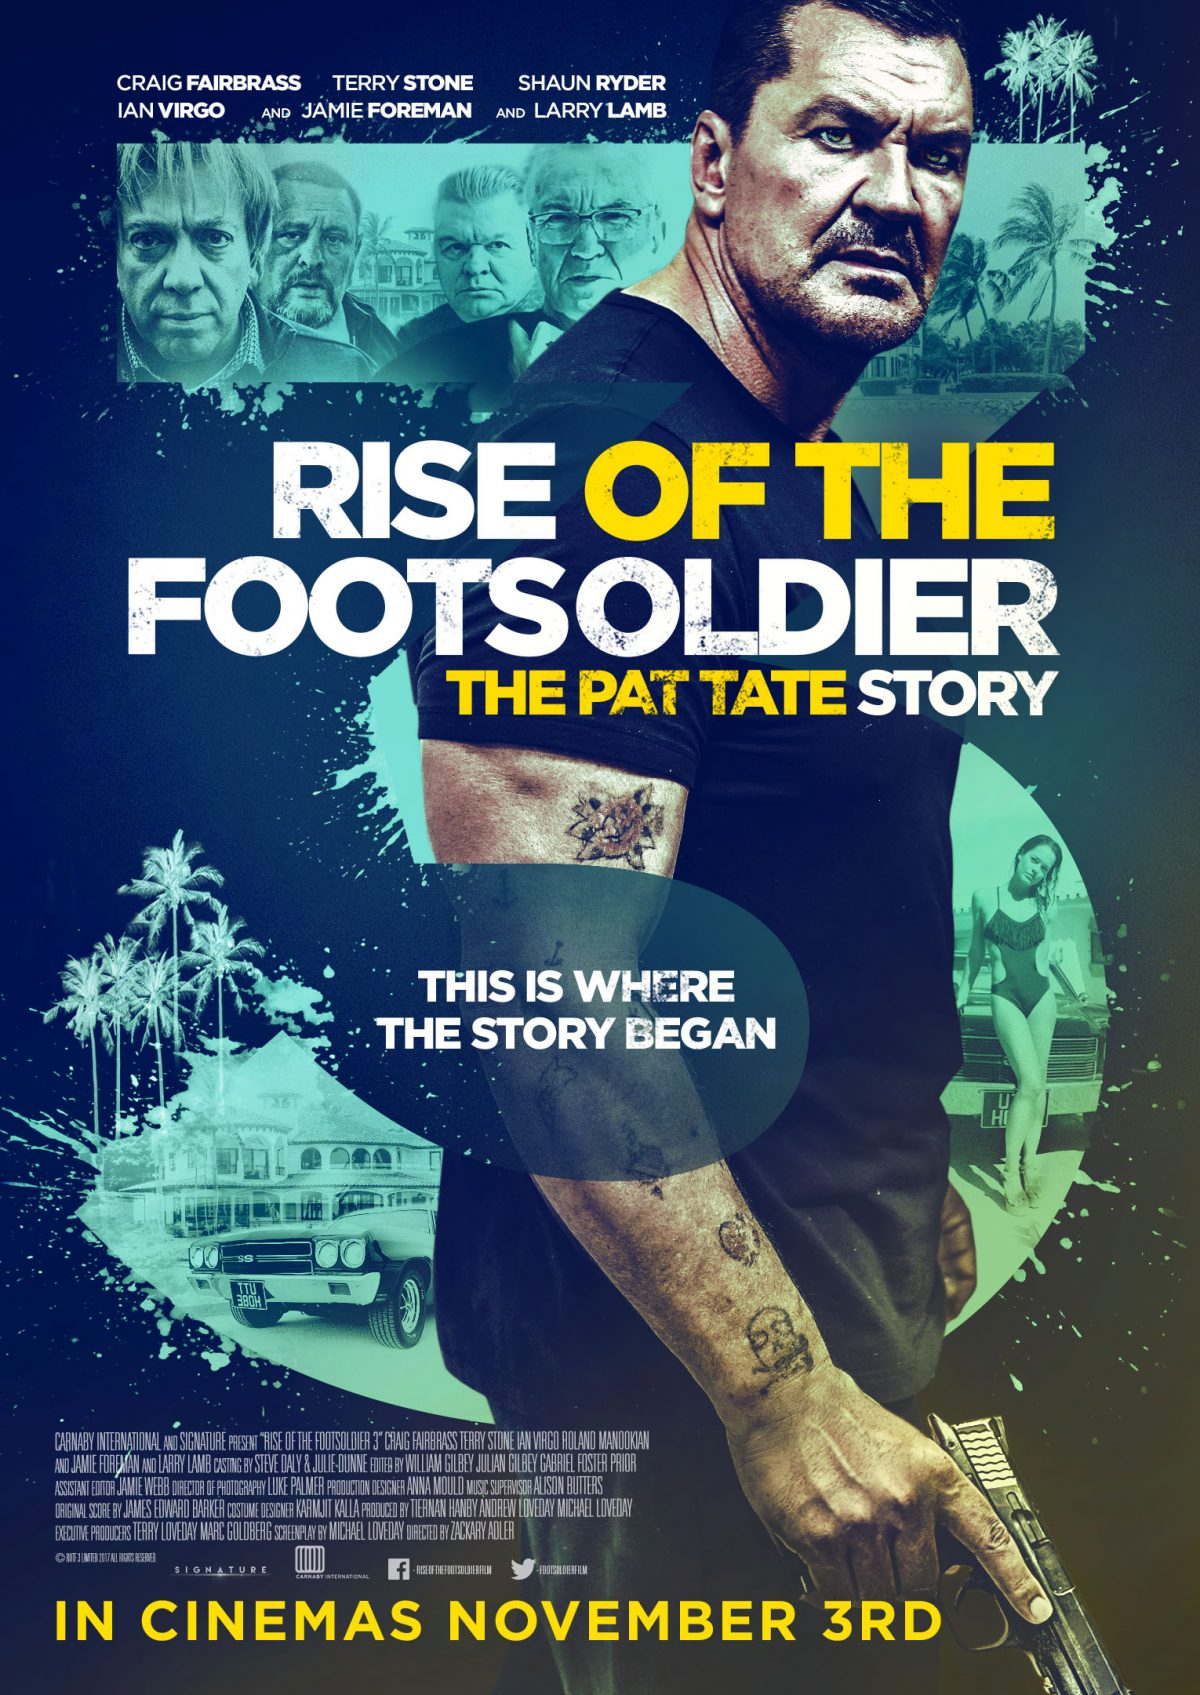 An all-out bare-knuckle prequel to the iconic #Brit crime thriller #RiseOfTheFootsoldier, starring #CraigFairbrass #LarryLamb and #TerryStone, gets a new #trailer and #poster before its UK cinema release in November